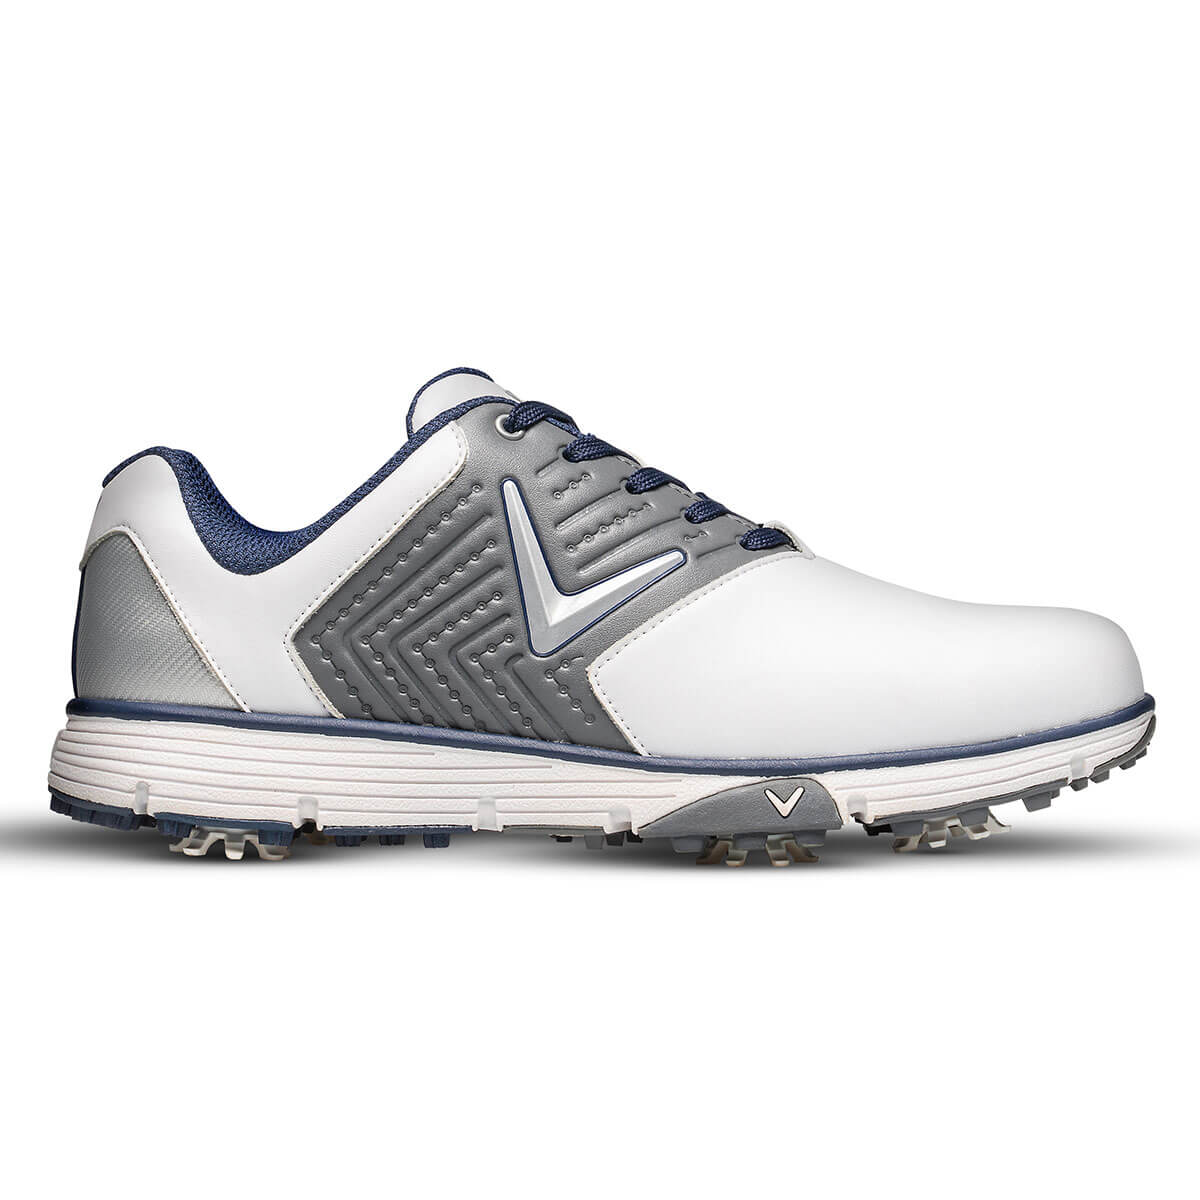 Callaway-Golf-Mens-2019-Chev-Mulligan-Waterproof-Leather-Golf-Shoes-29-OFF-RRP thumbnail 17